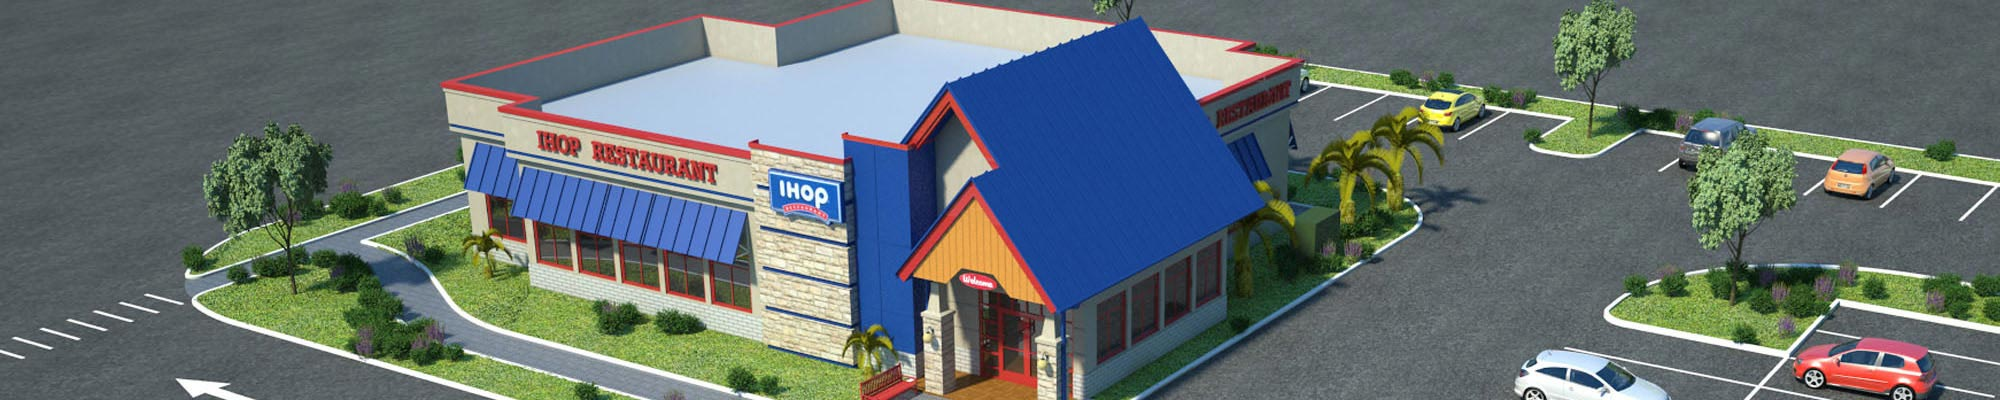 3D Architectural Modeling and Rendering